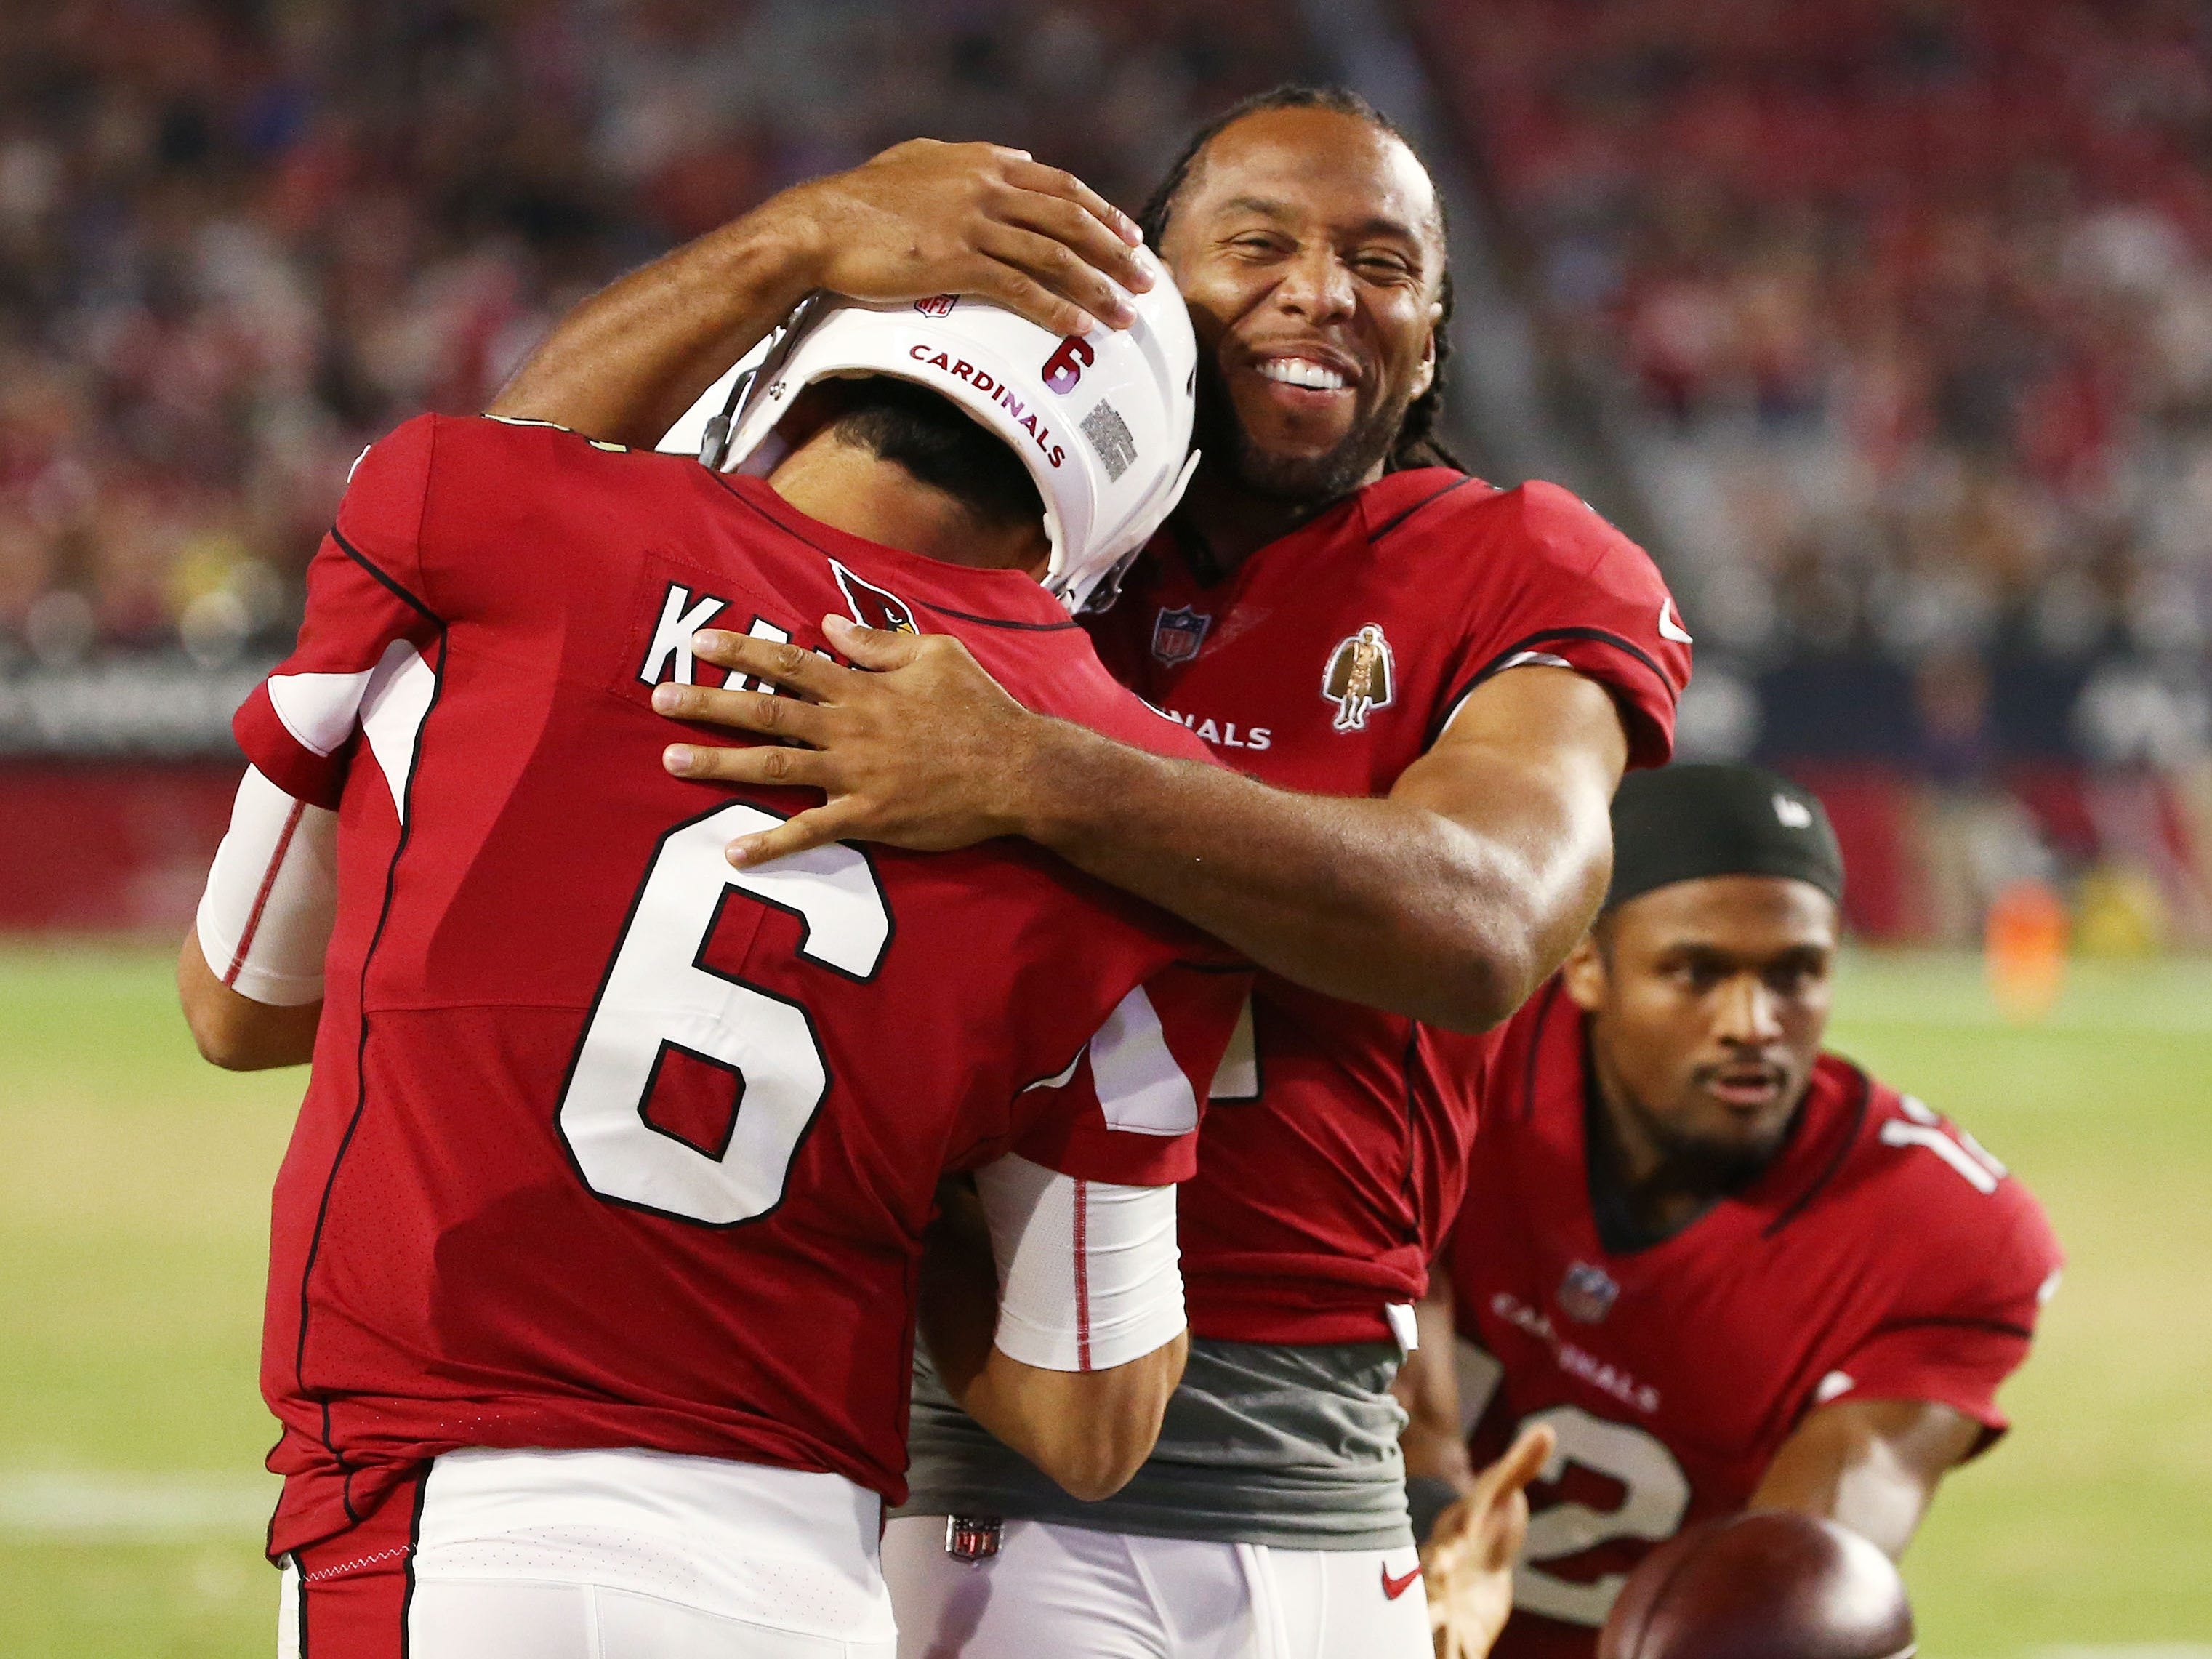 Arizona Cardinals Larry Fitzgerald hugs quarterback Chad Kanoff after throwing a touchdown pass against the L.A. Chargers in the second half during a preseason NFL football game on Aug. 11, 2018 at University of Phoenix Stadium in Glendale, Ariz.